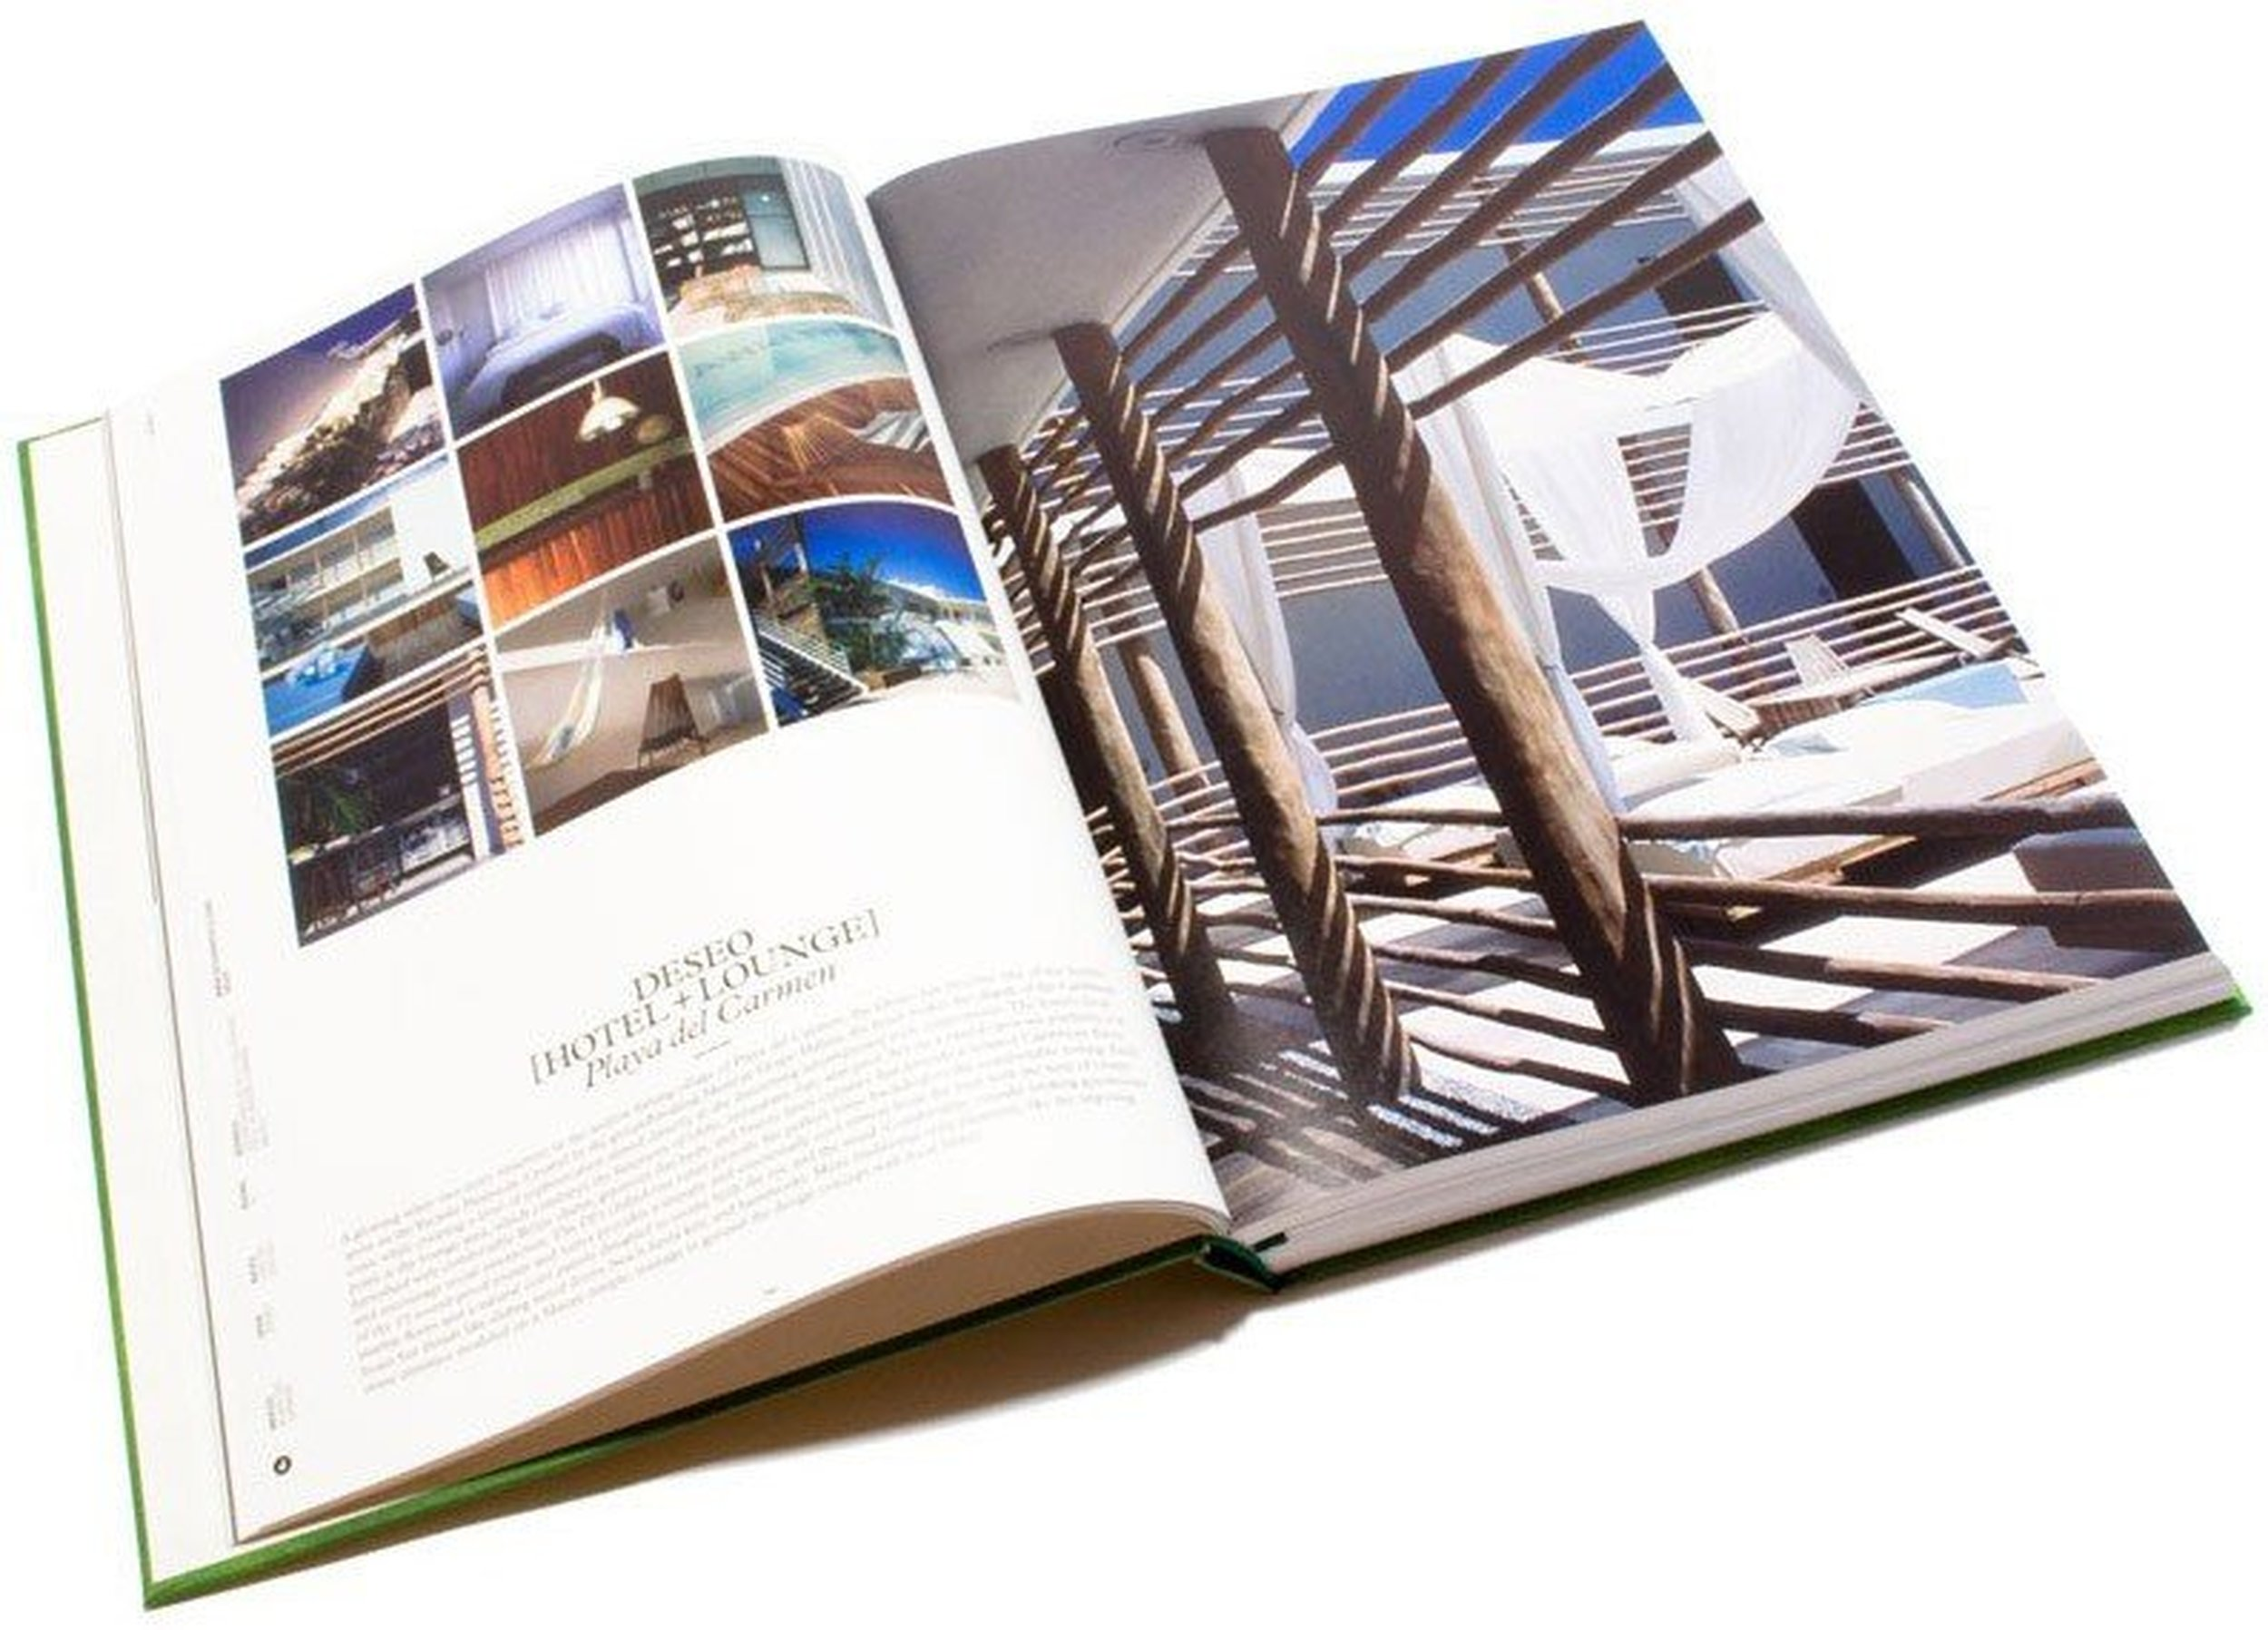 Ksi Ka The Design Hotels Book Gestalten Fabryka Form